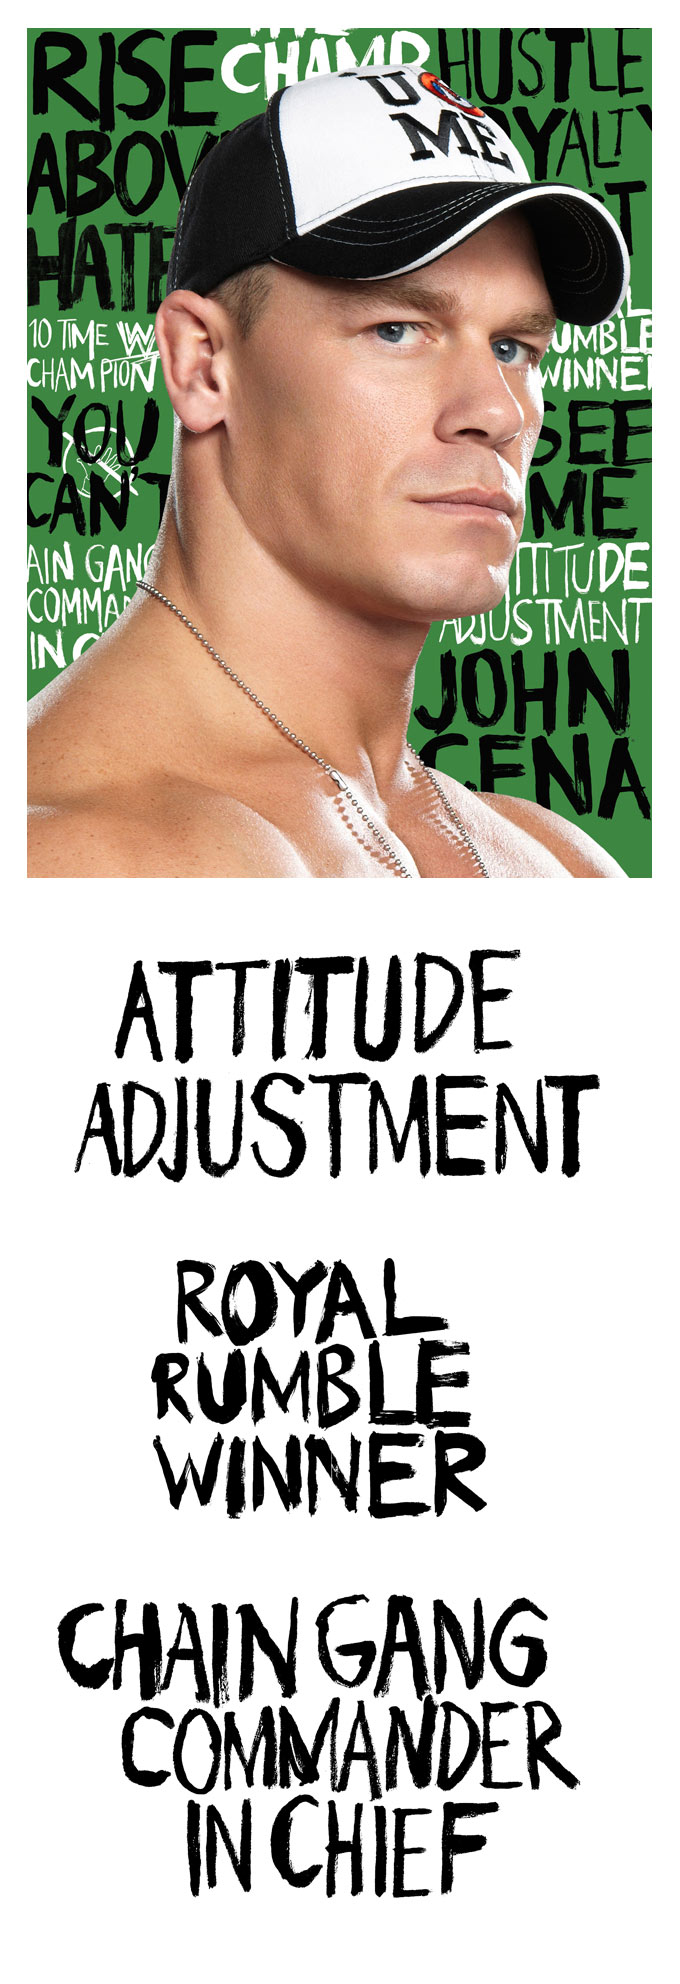 John Cena WWE wrestler - hand lettering in ink and paint on paper